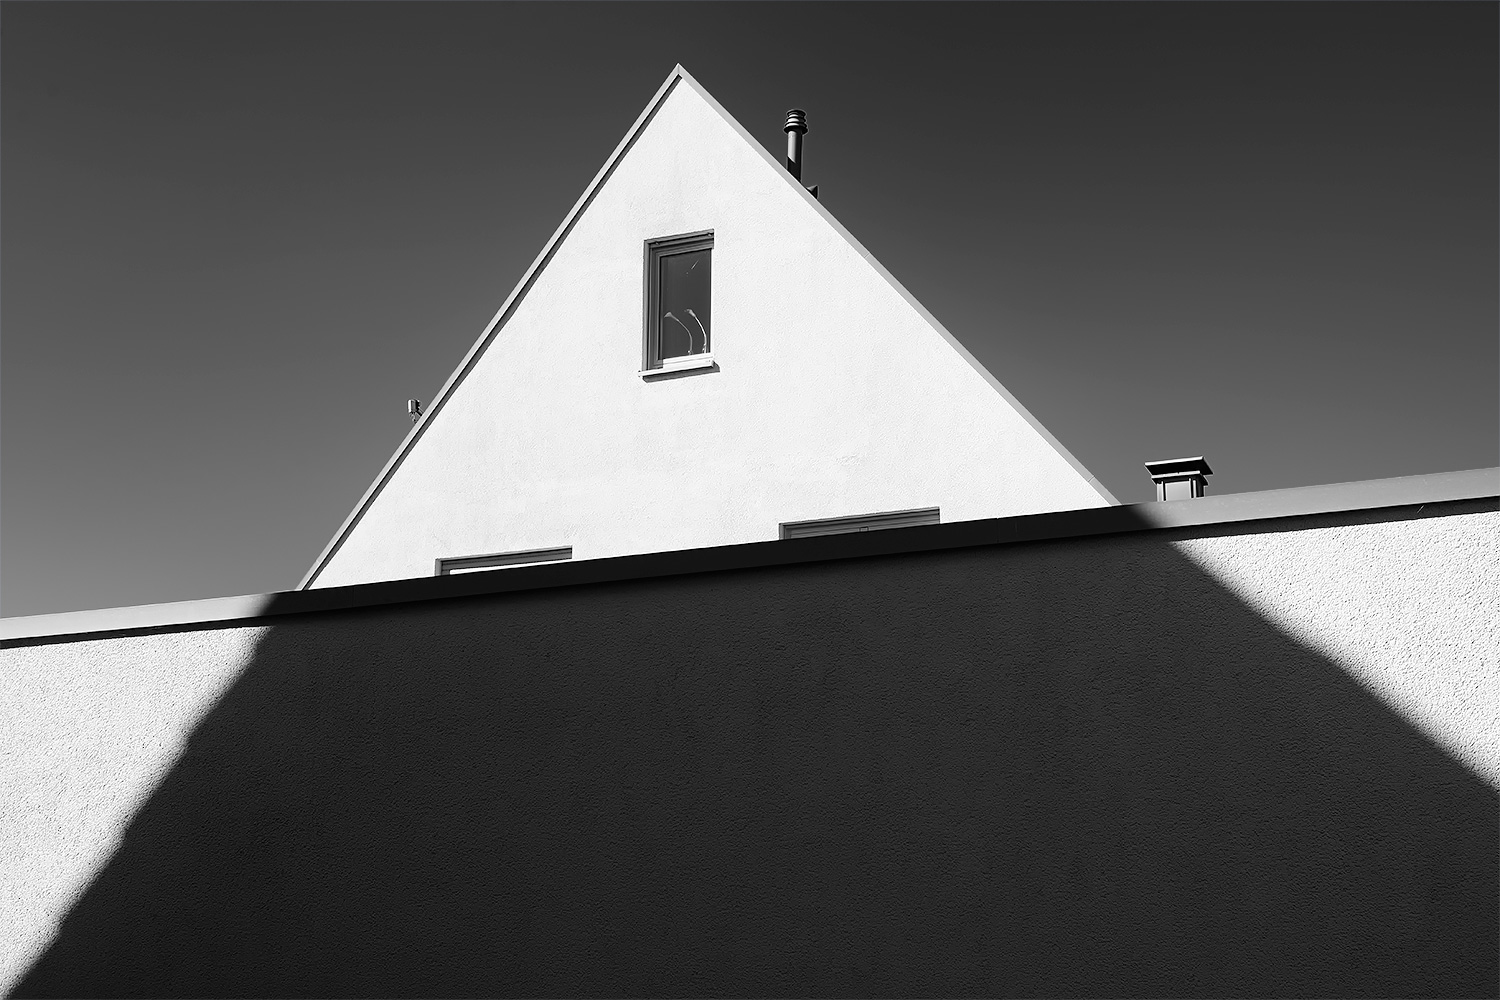 house emanating from a shadow author arnold wolfg wolfgang